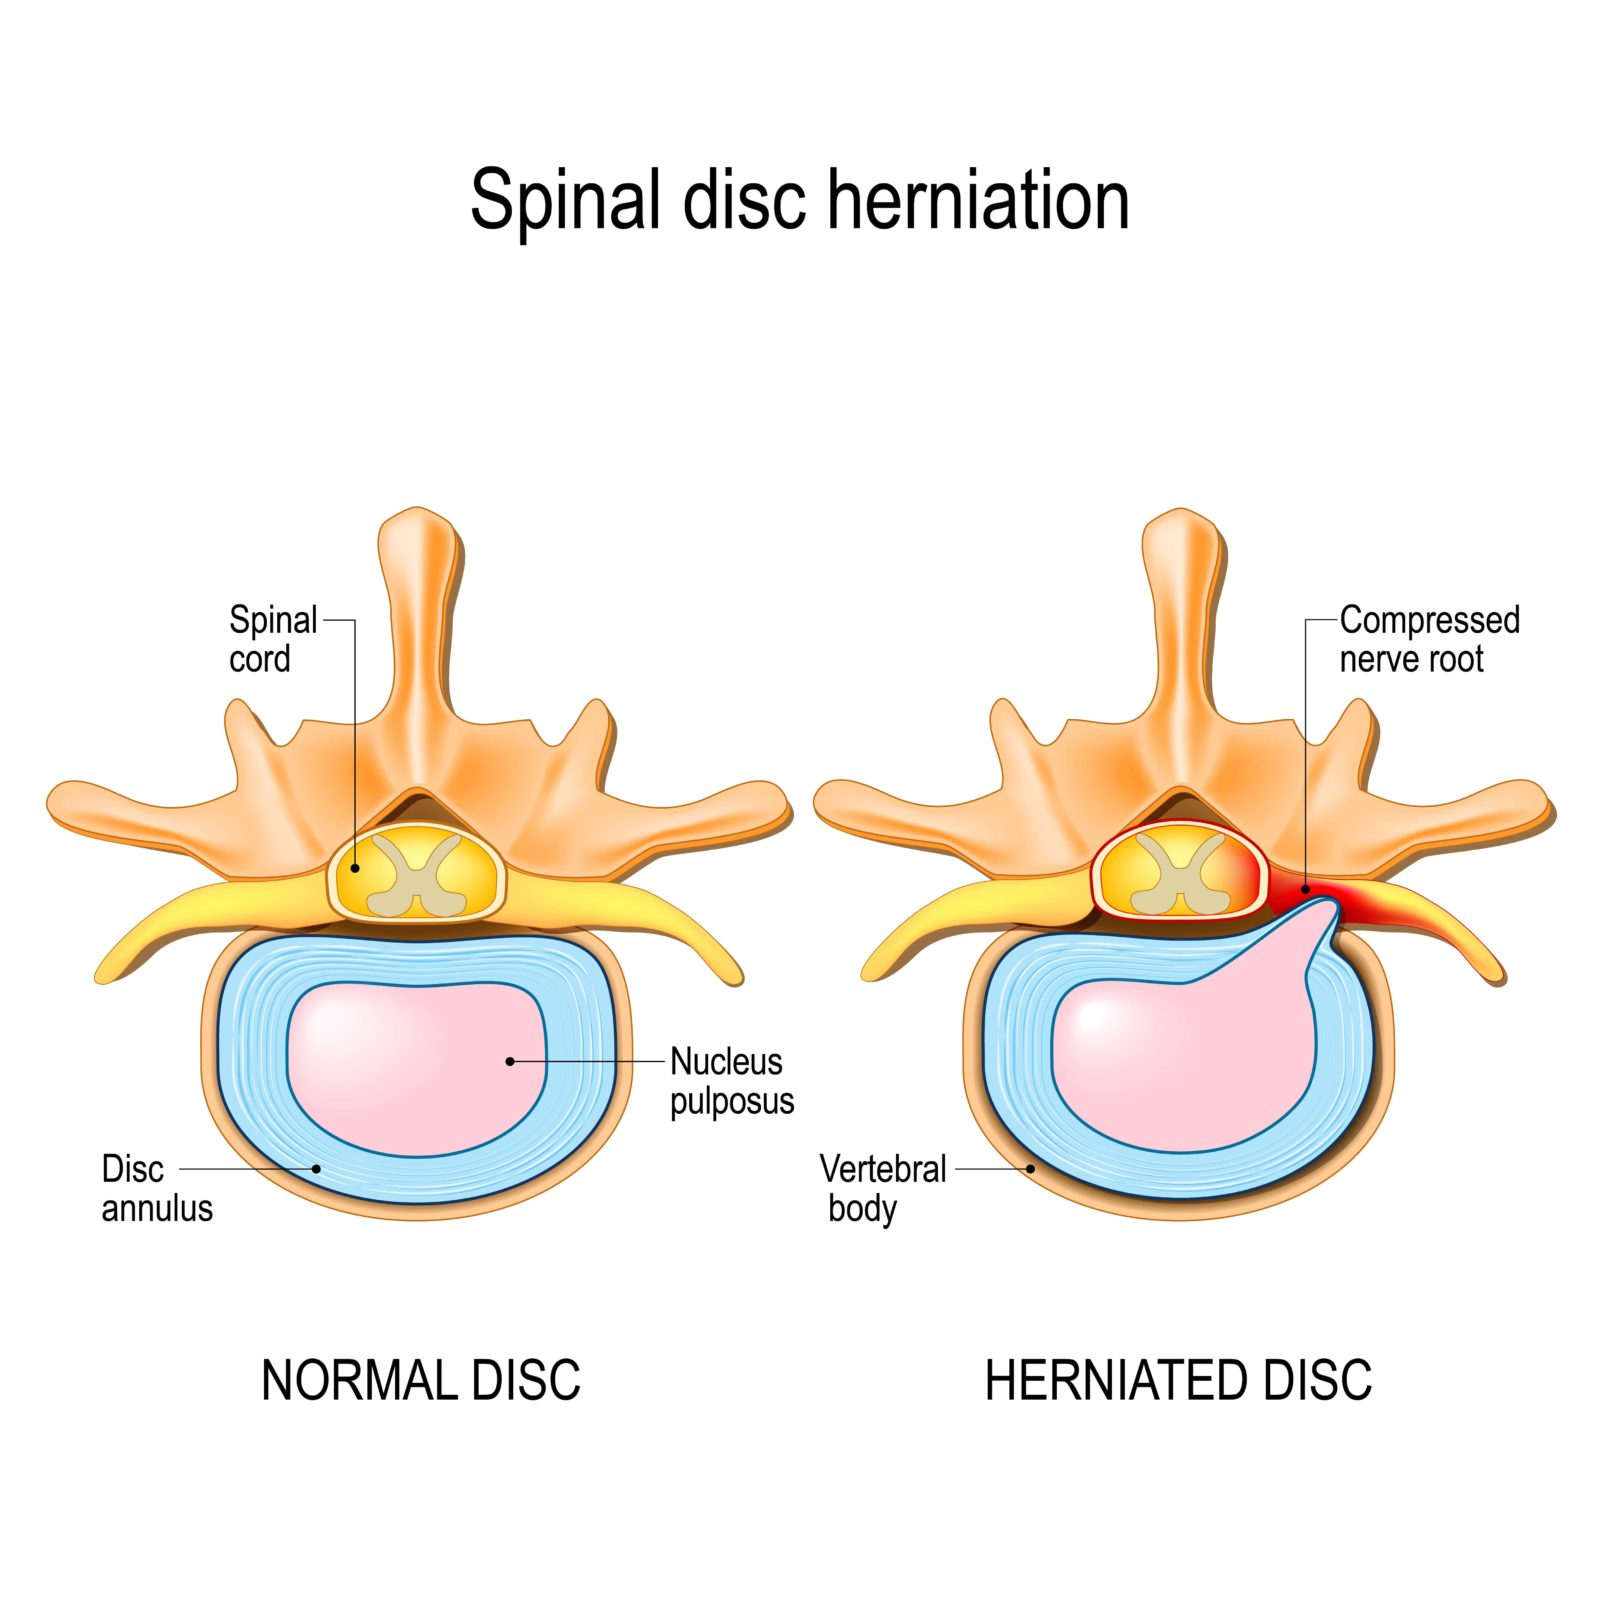 diagram of a normal disc and herniated disc